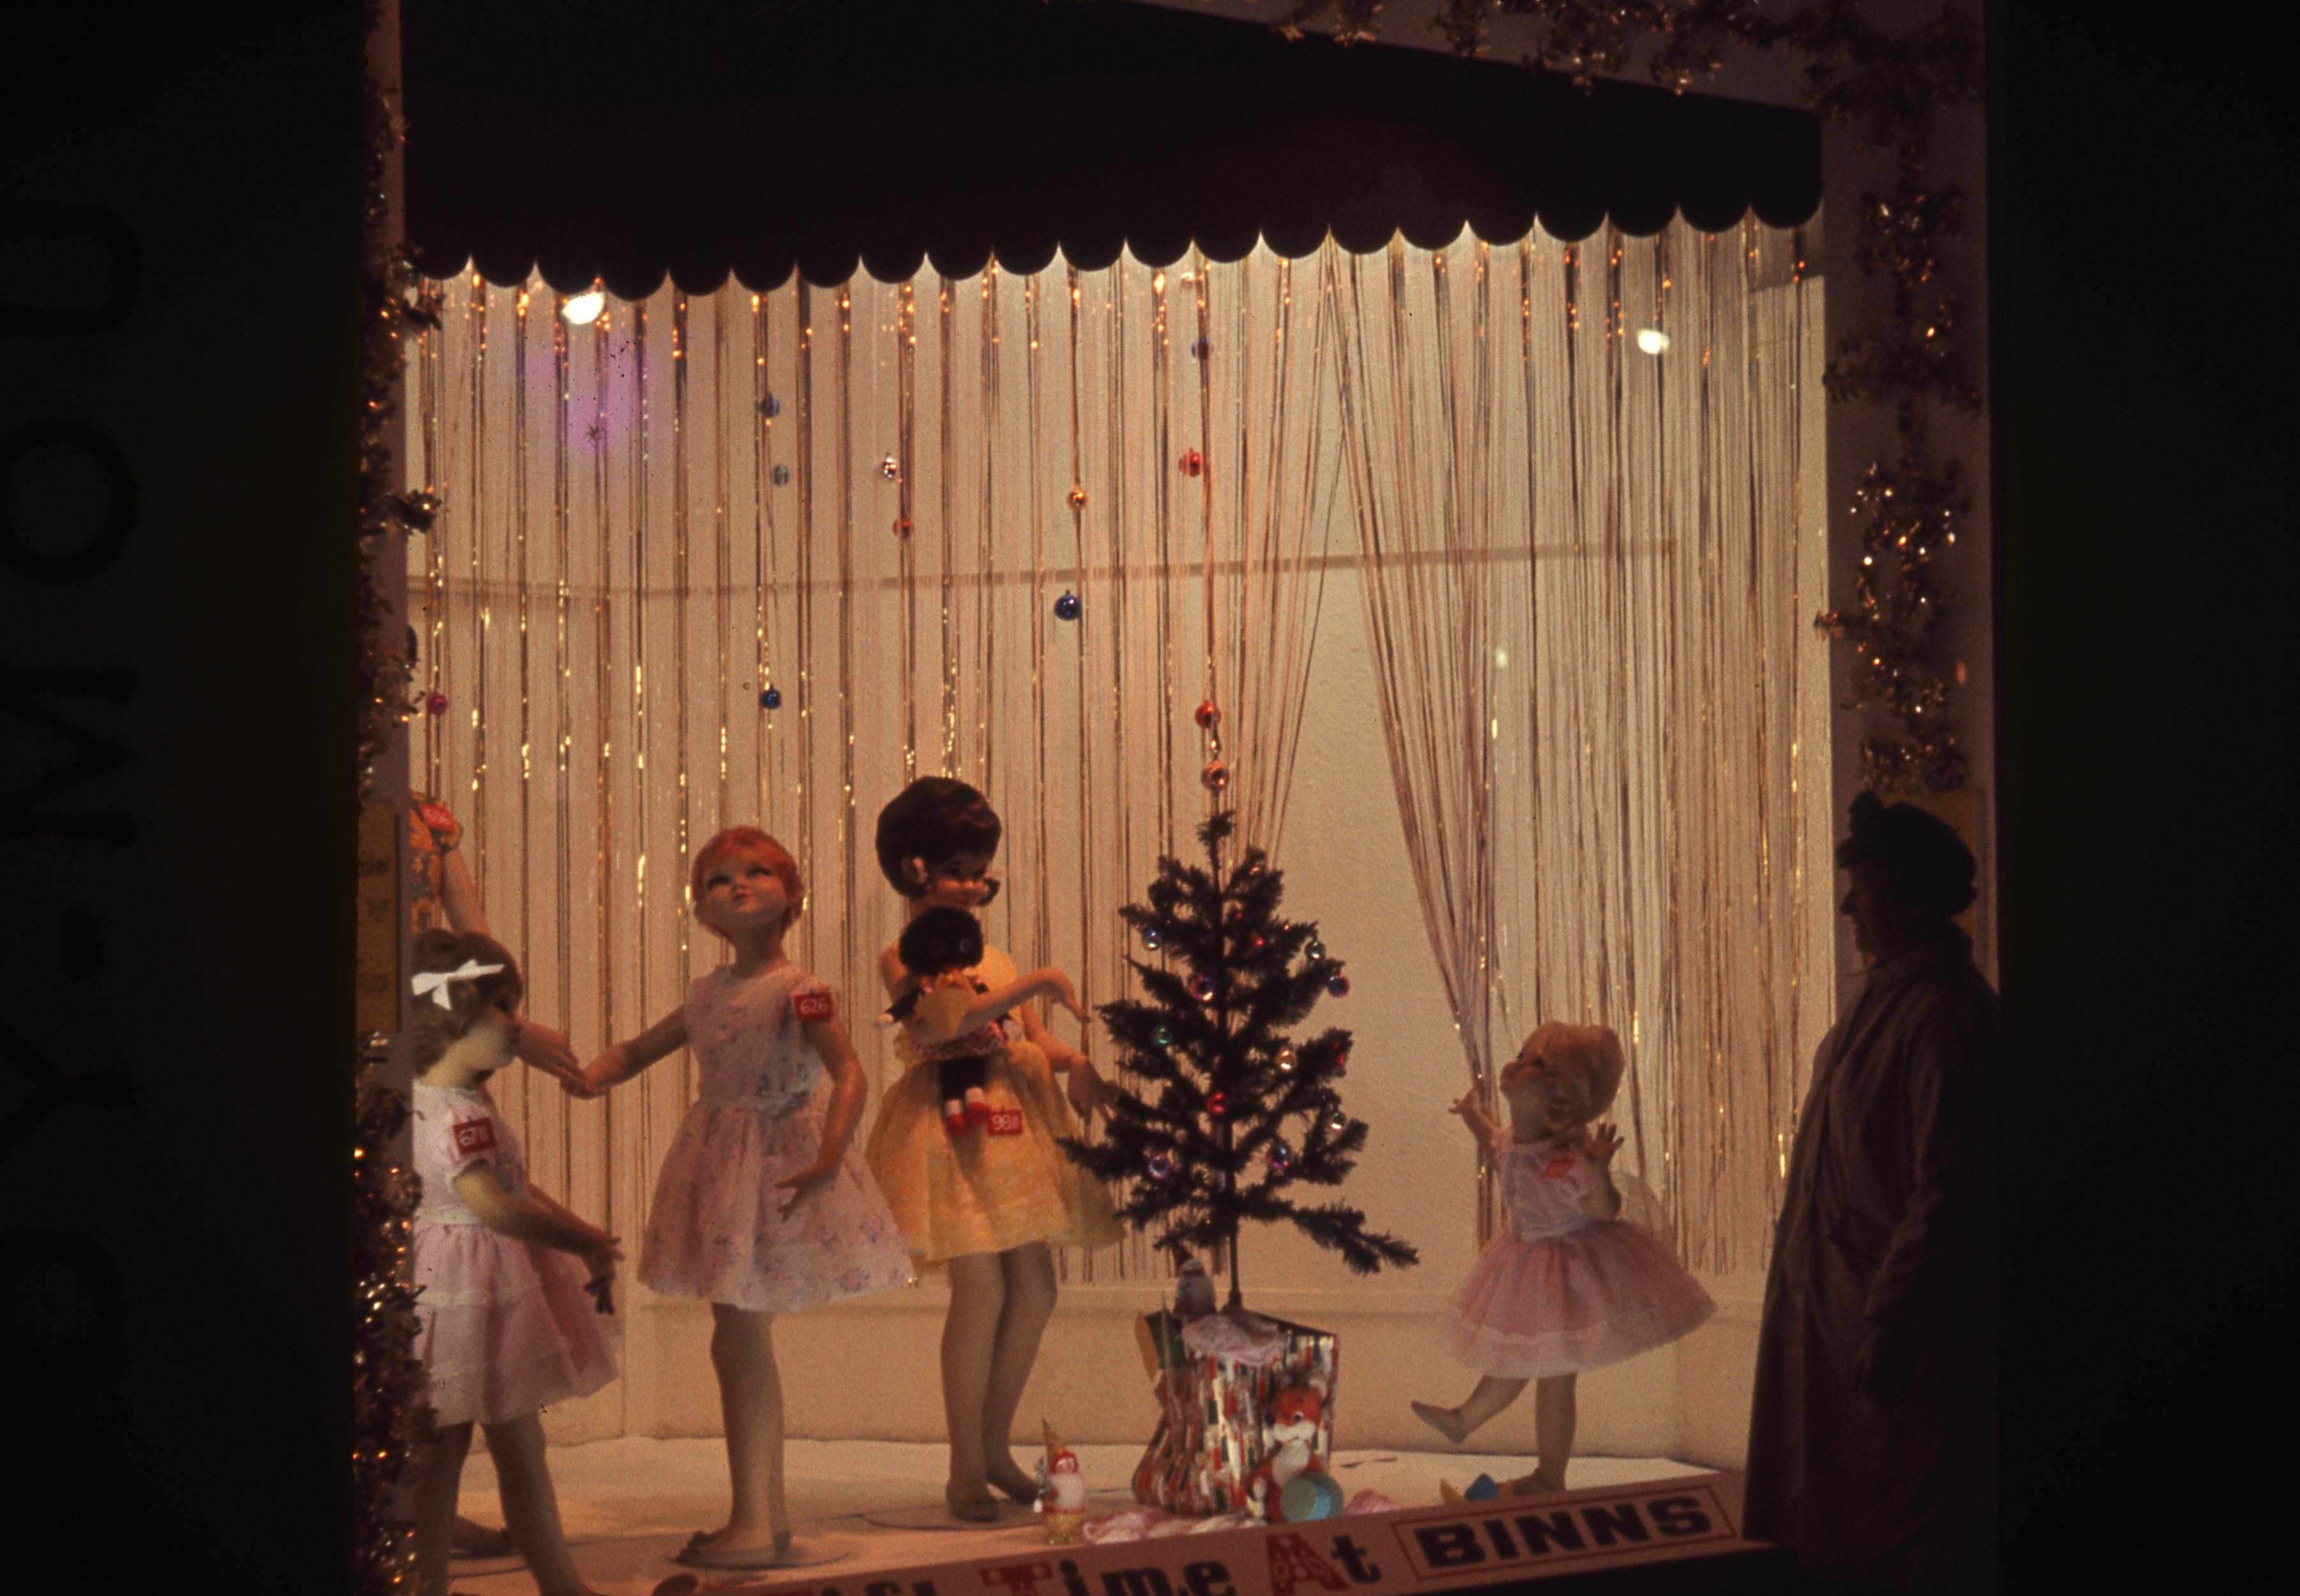 This photograph shows the festive window of Binns department store in Newcastle upon Tyne. This is a 35mm slide. It was taken in 1963.